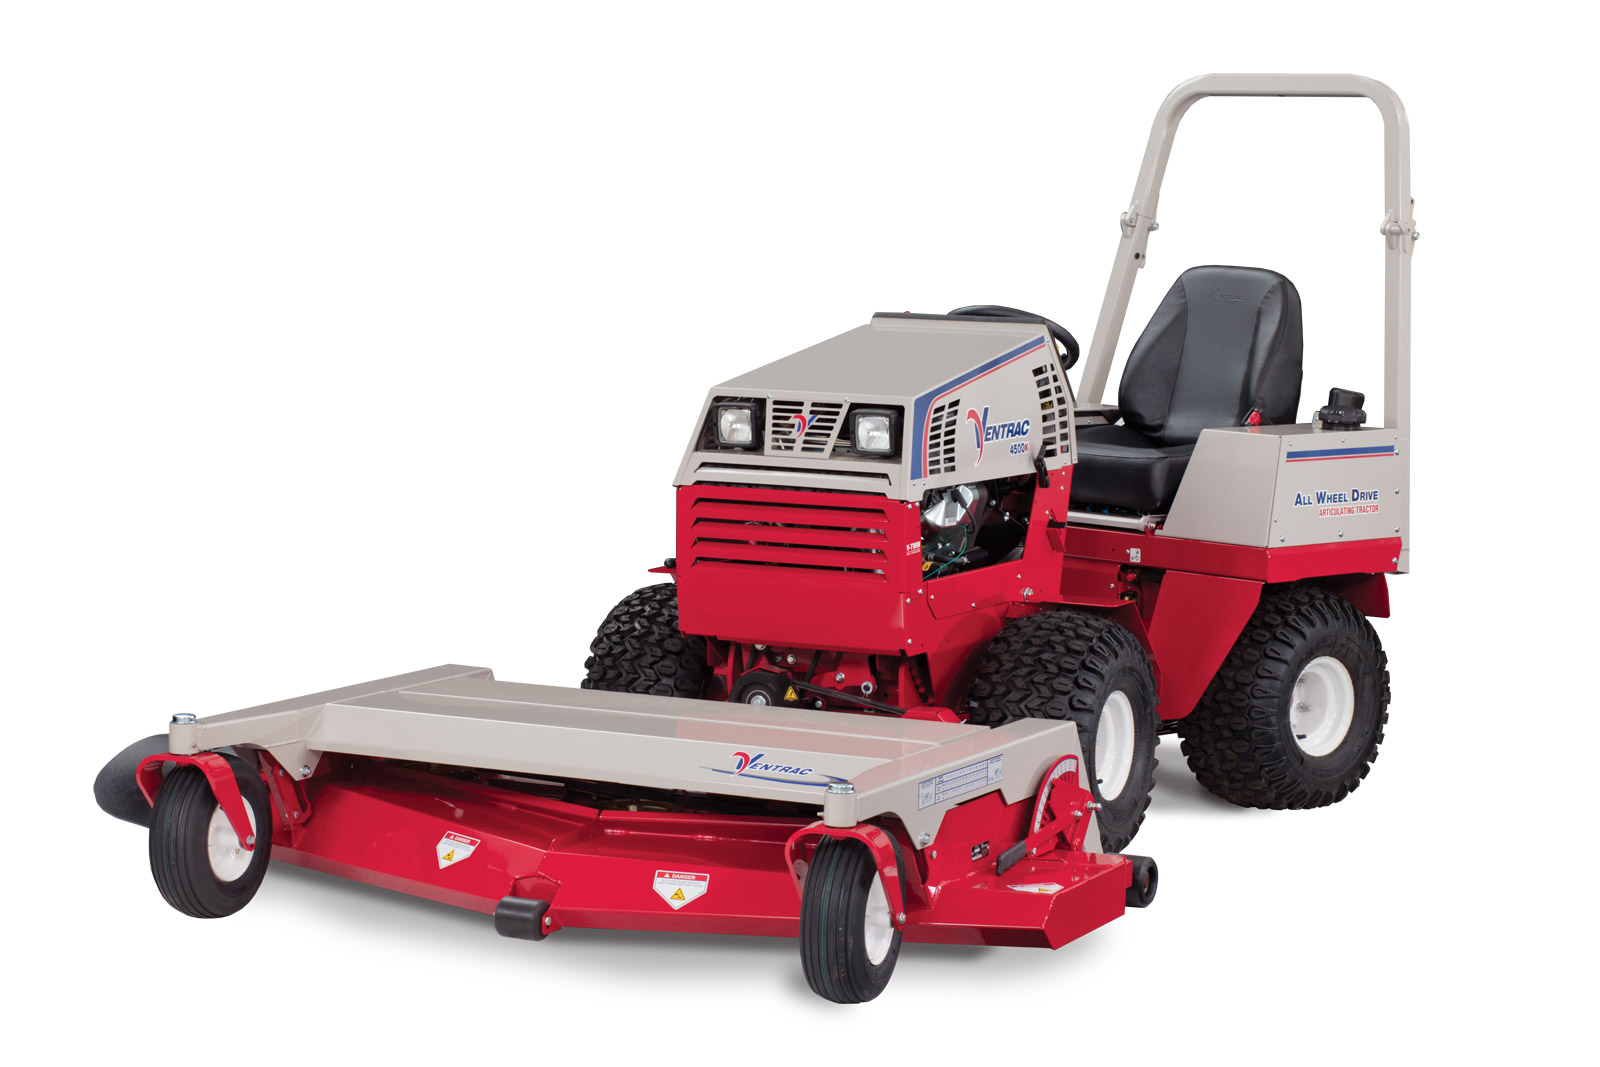 Ventrac HMHP Side Discharge Finish Mowers